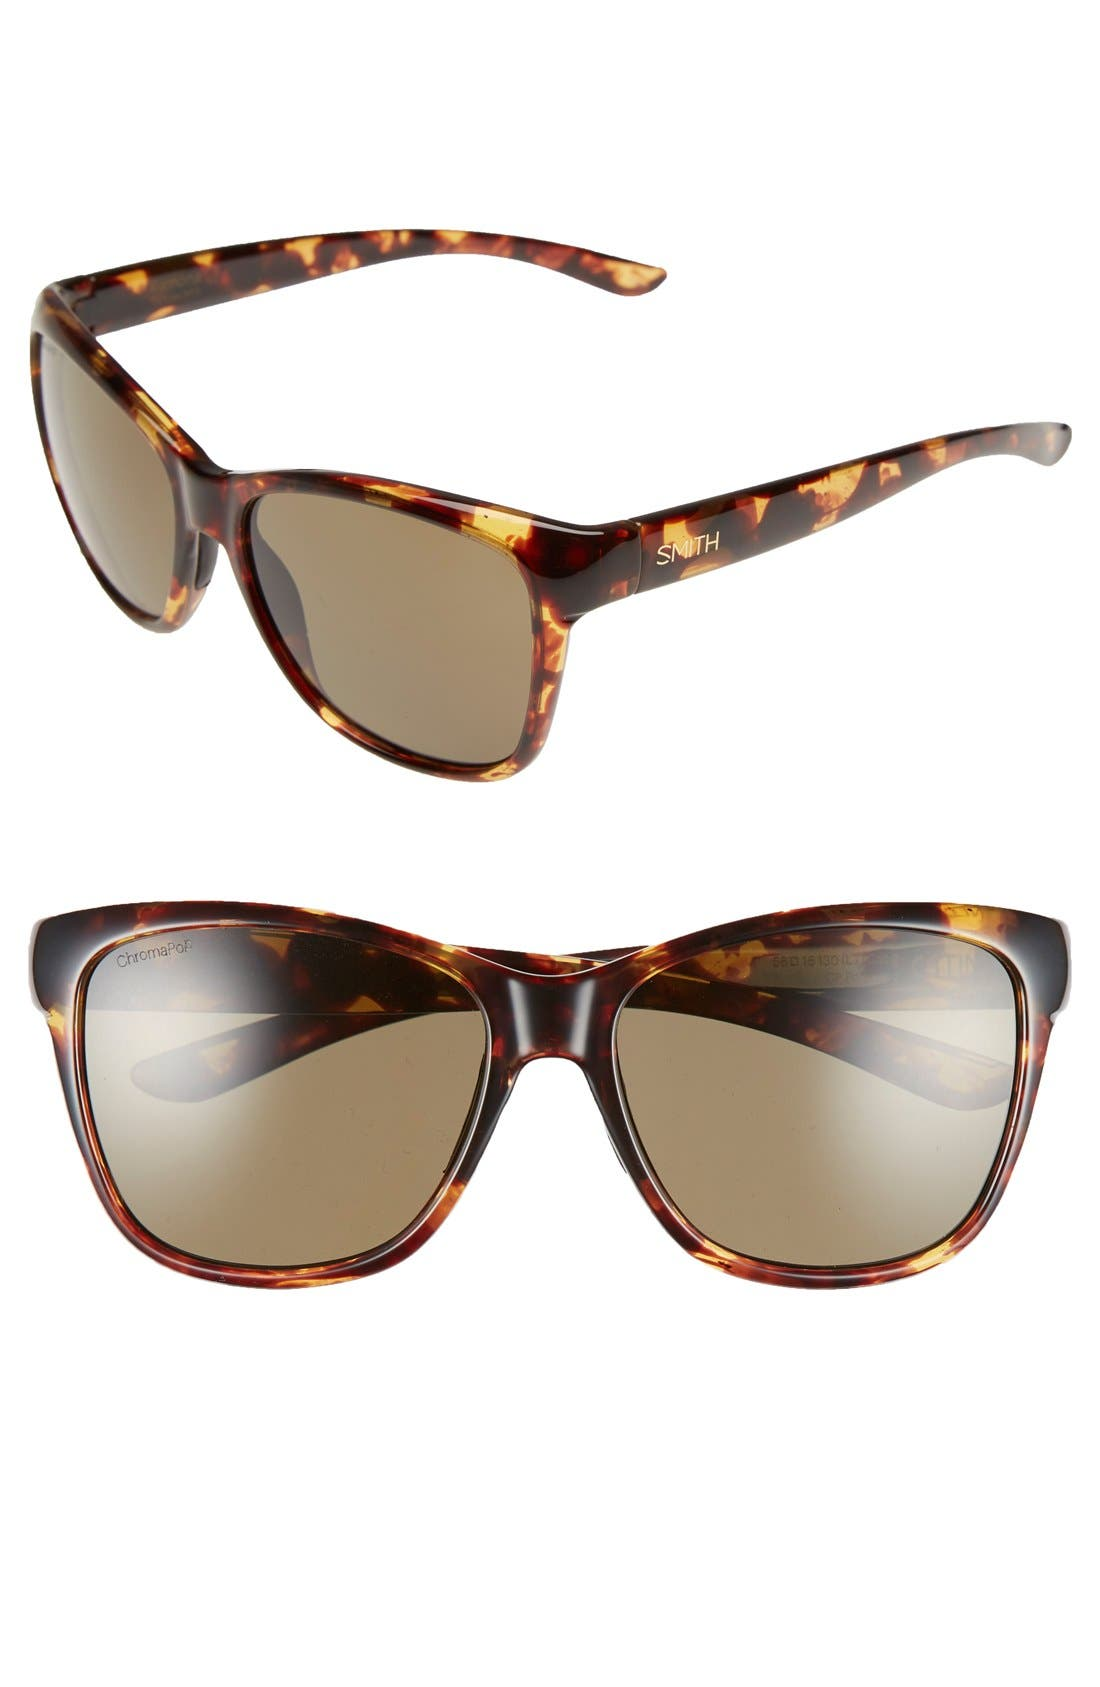 Alternate Image 1 Selected - Smith 'Ramona' 56mm ChromaPop Polarized Sunglasses